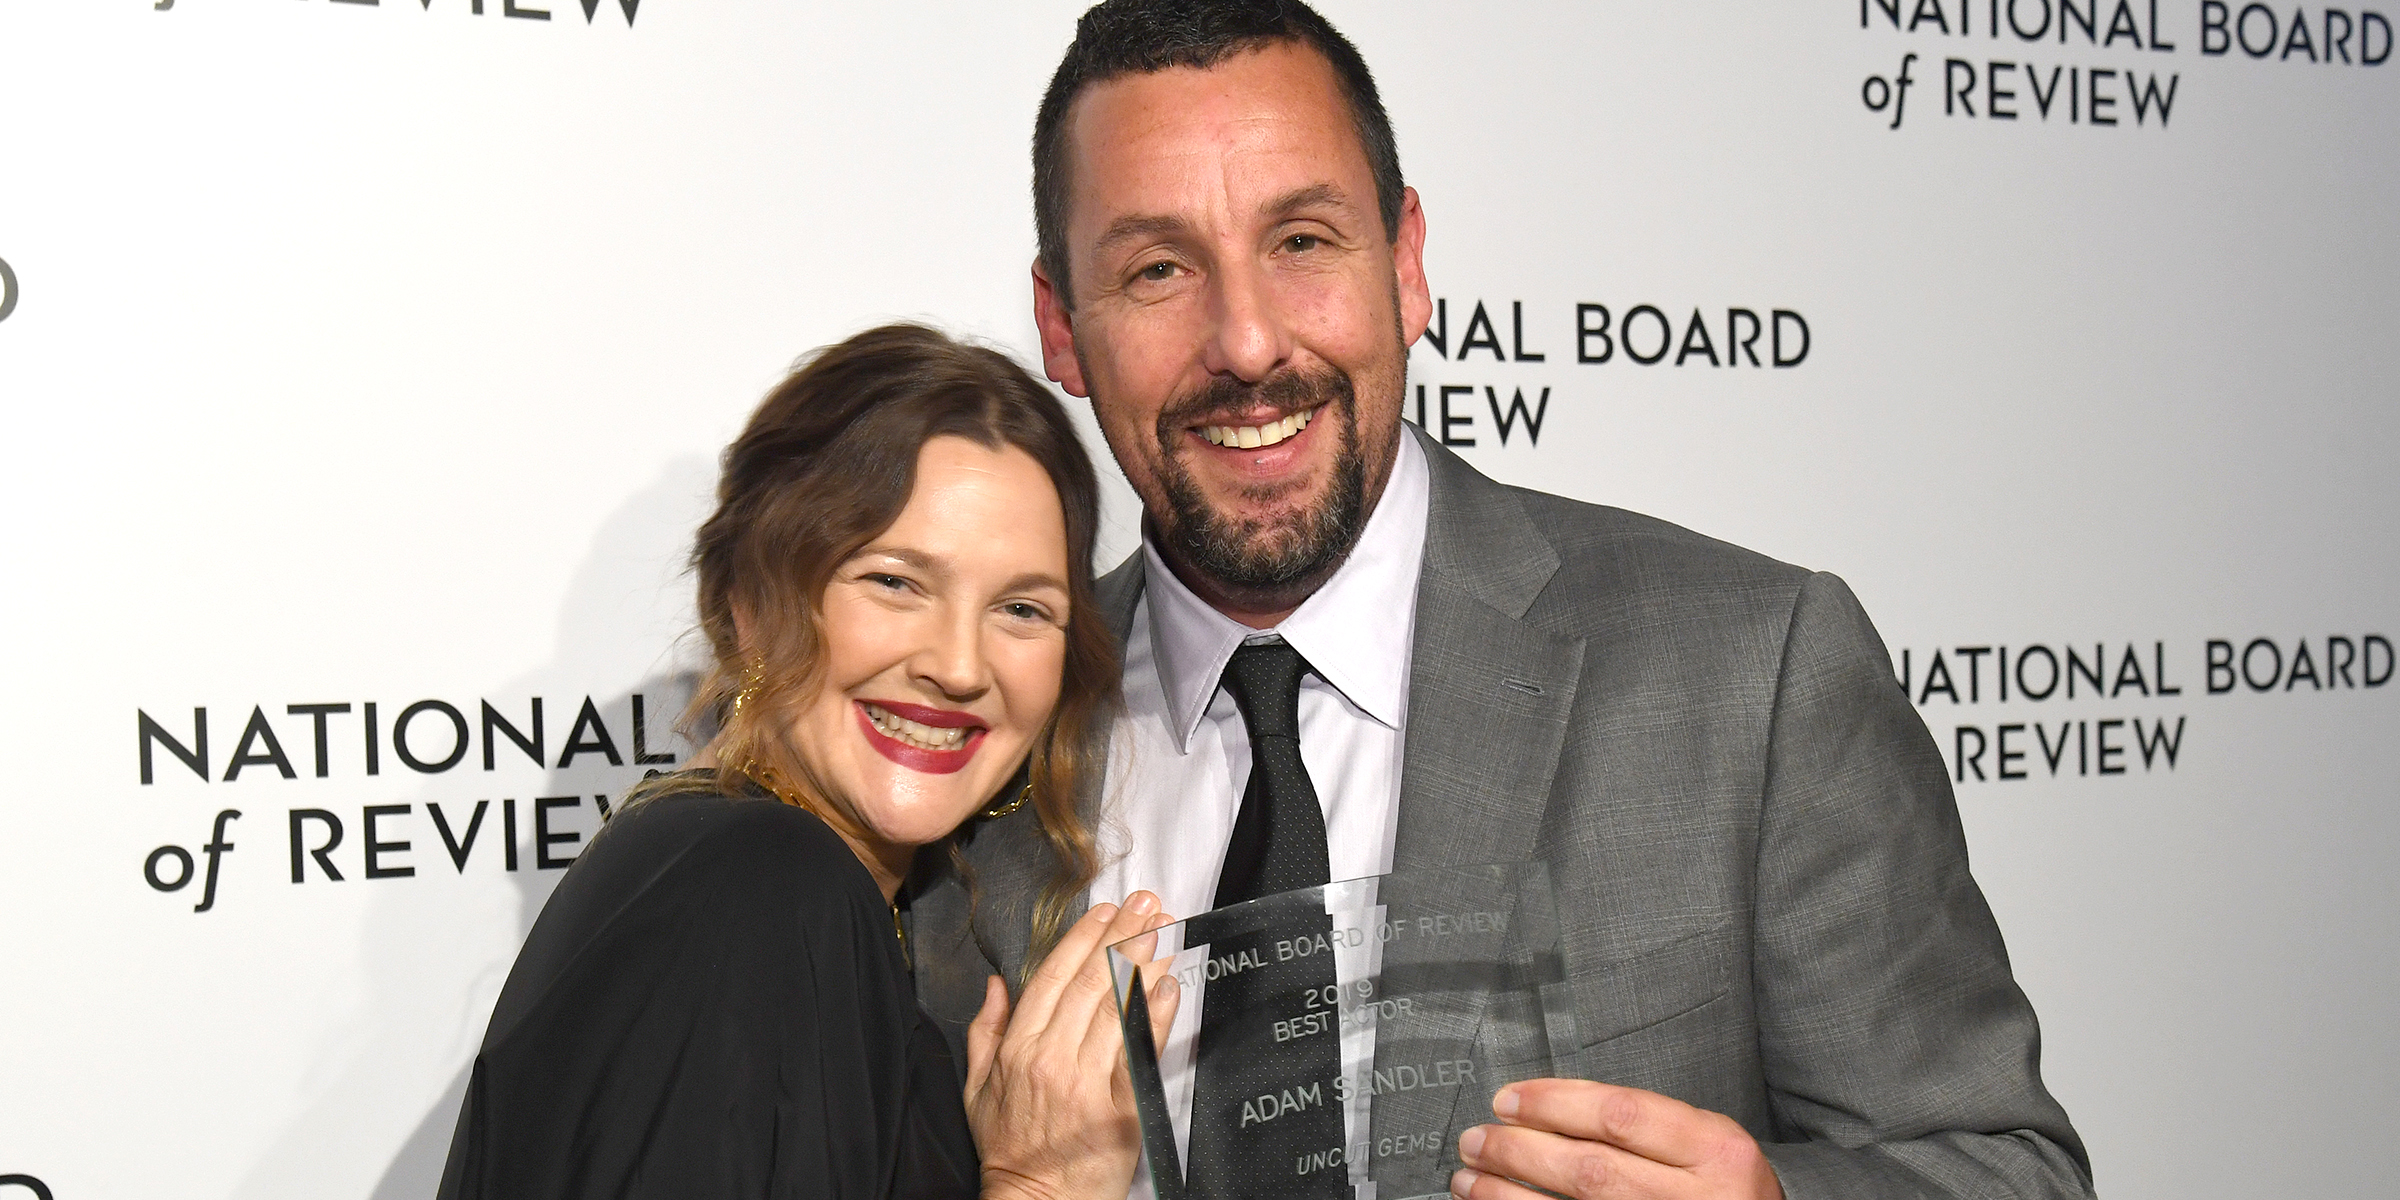 Adam Sandler Gets Emotional As He Thanks Friend Drew Barrymore